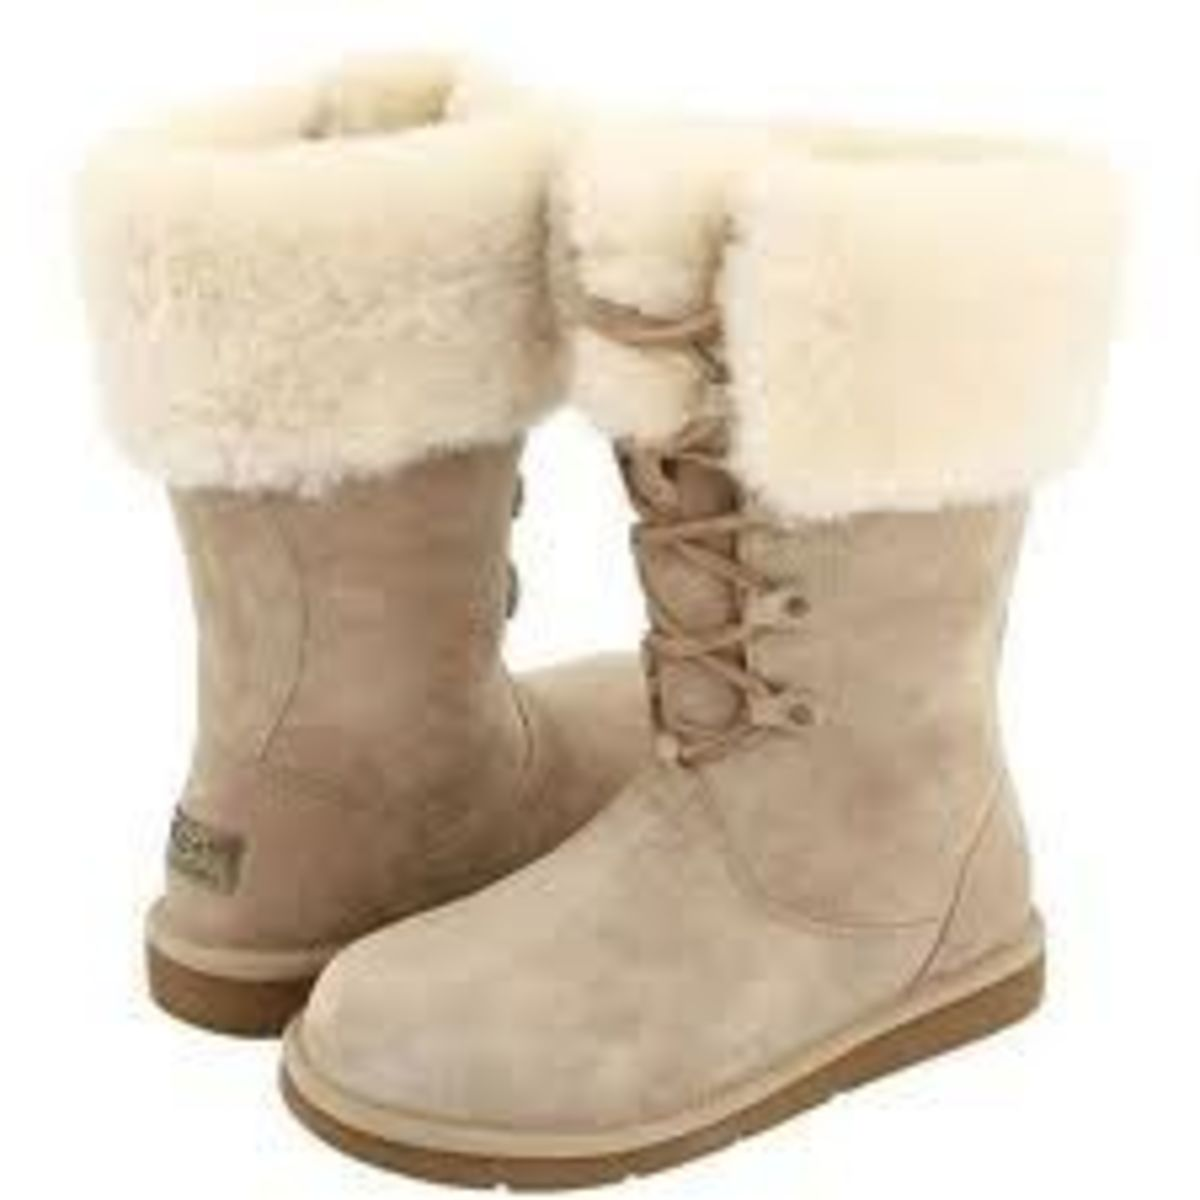 How to Clean Uggs Without Ruining Them